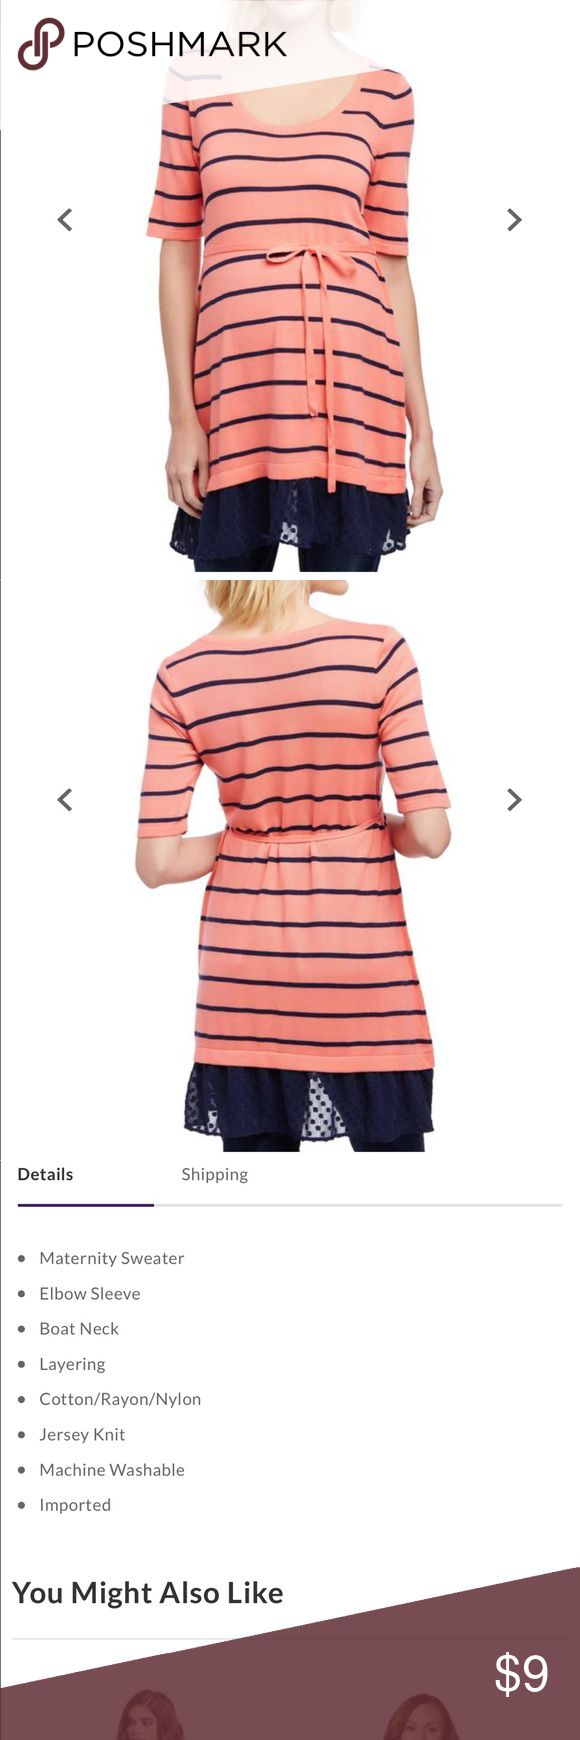 Black and white striped short sleeve Top is the same as picture above, but white with black stripes. Excellent used condition only worn a couple times. Motherhood Maternity Tops